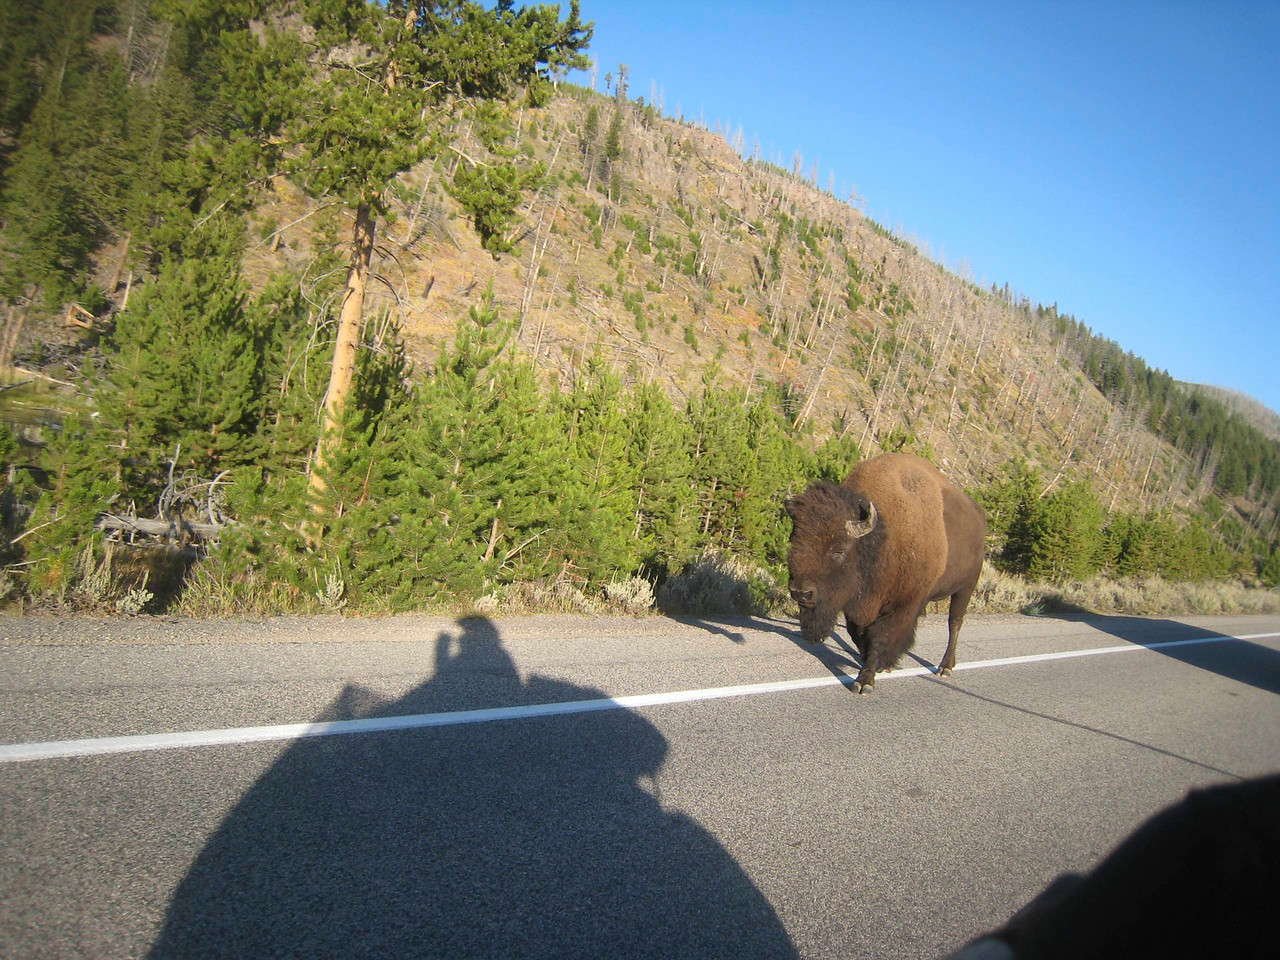 The bison ignored me.  I had to get one more pic as I rode past him, capturing my shadow in the process.